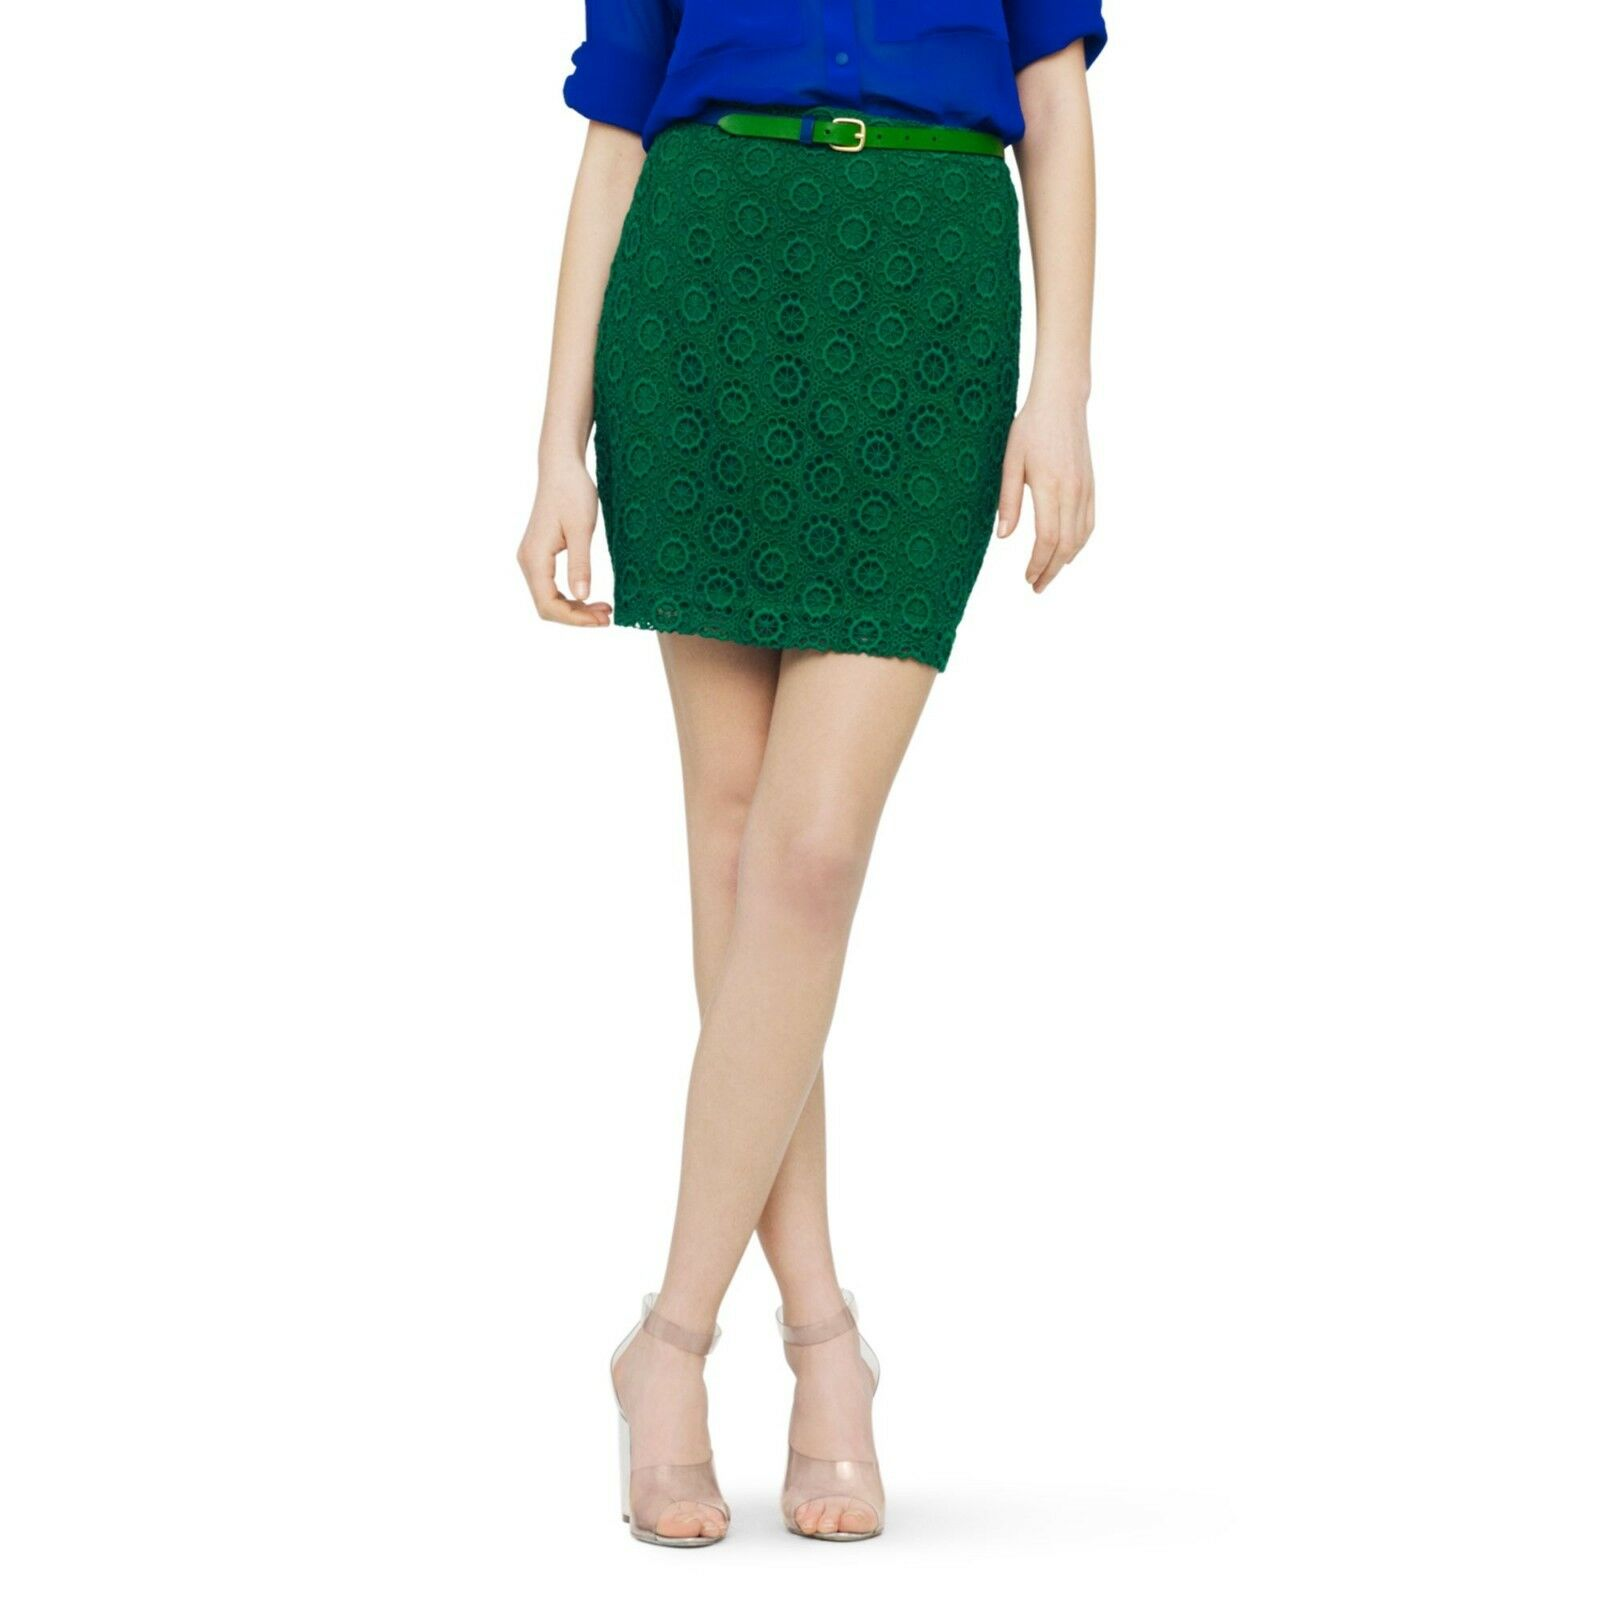 New Club Monaco Cora Skirt Embroidered Eyelet LACE Mini Emerald Green 6